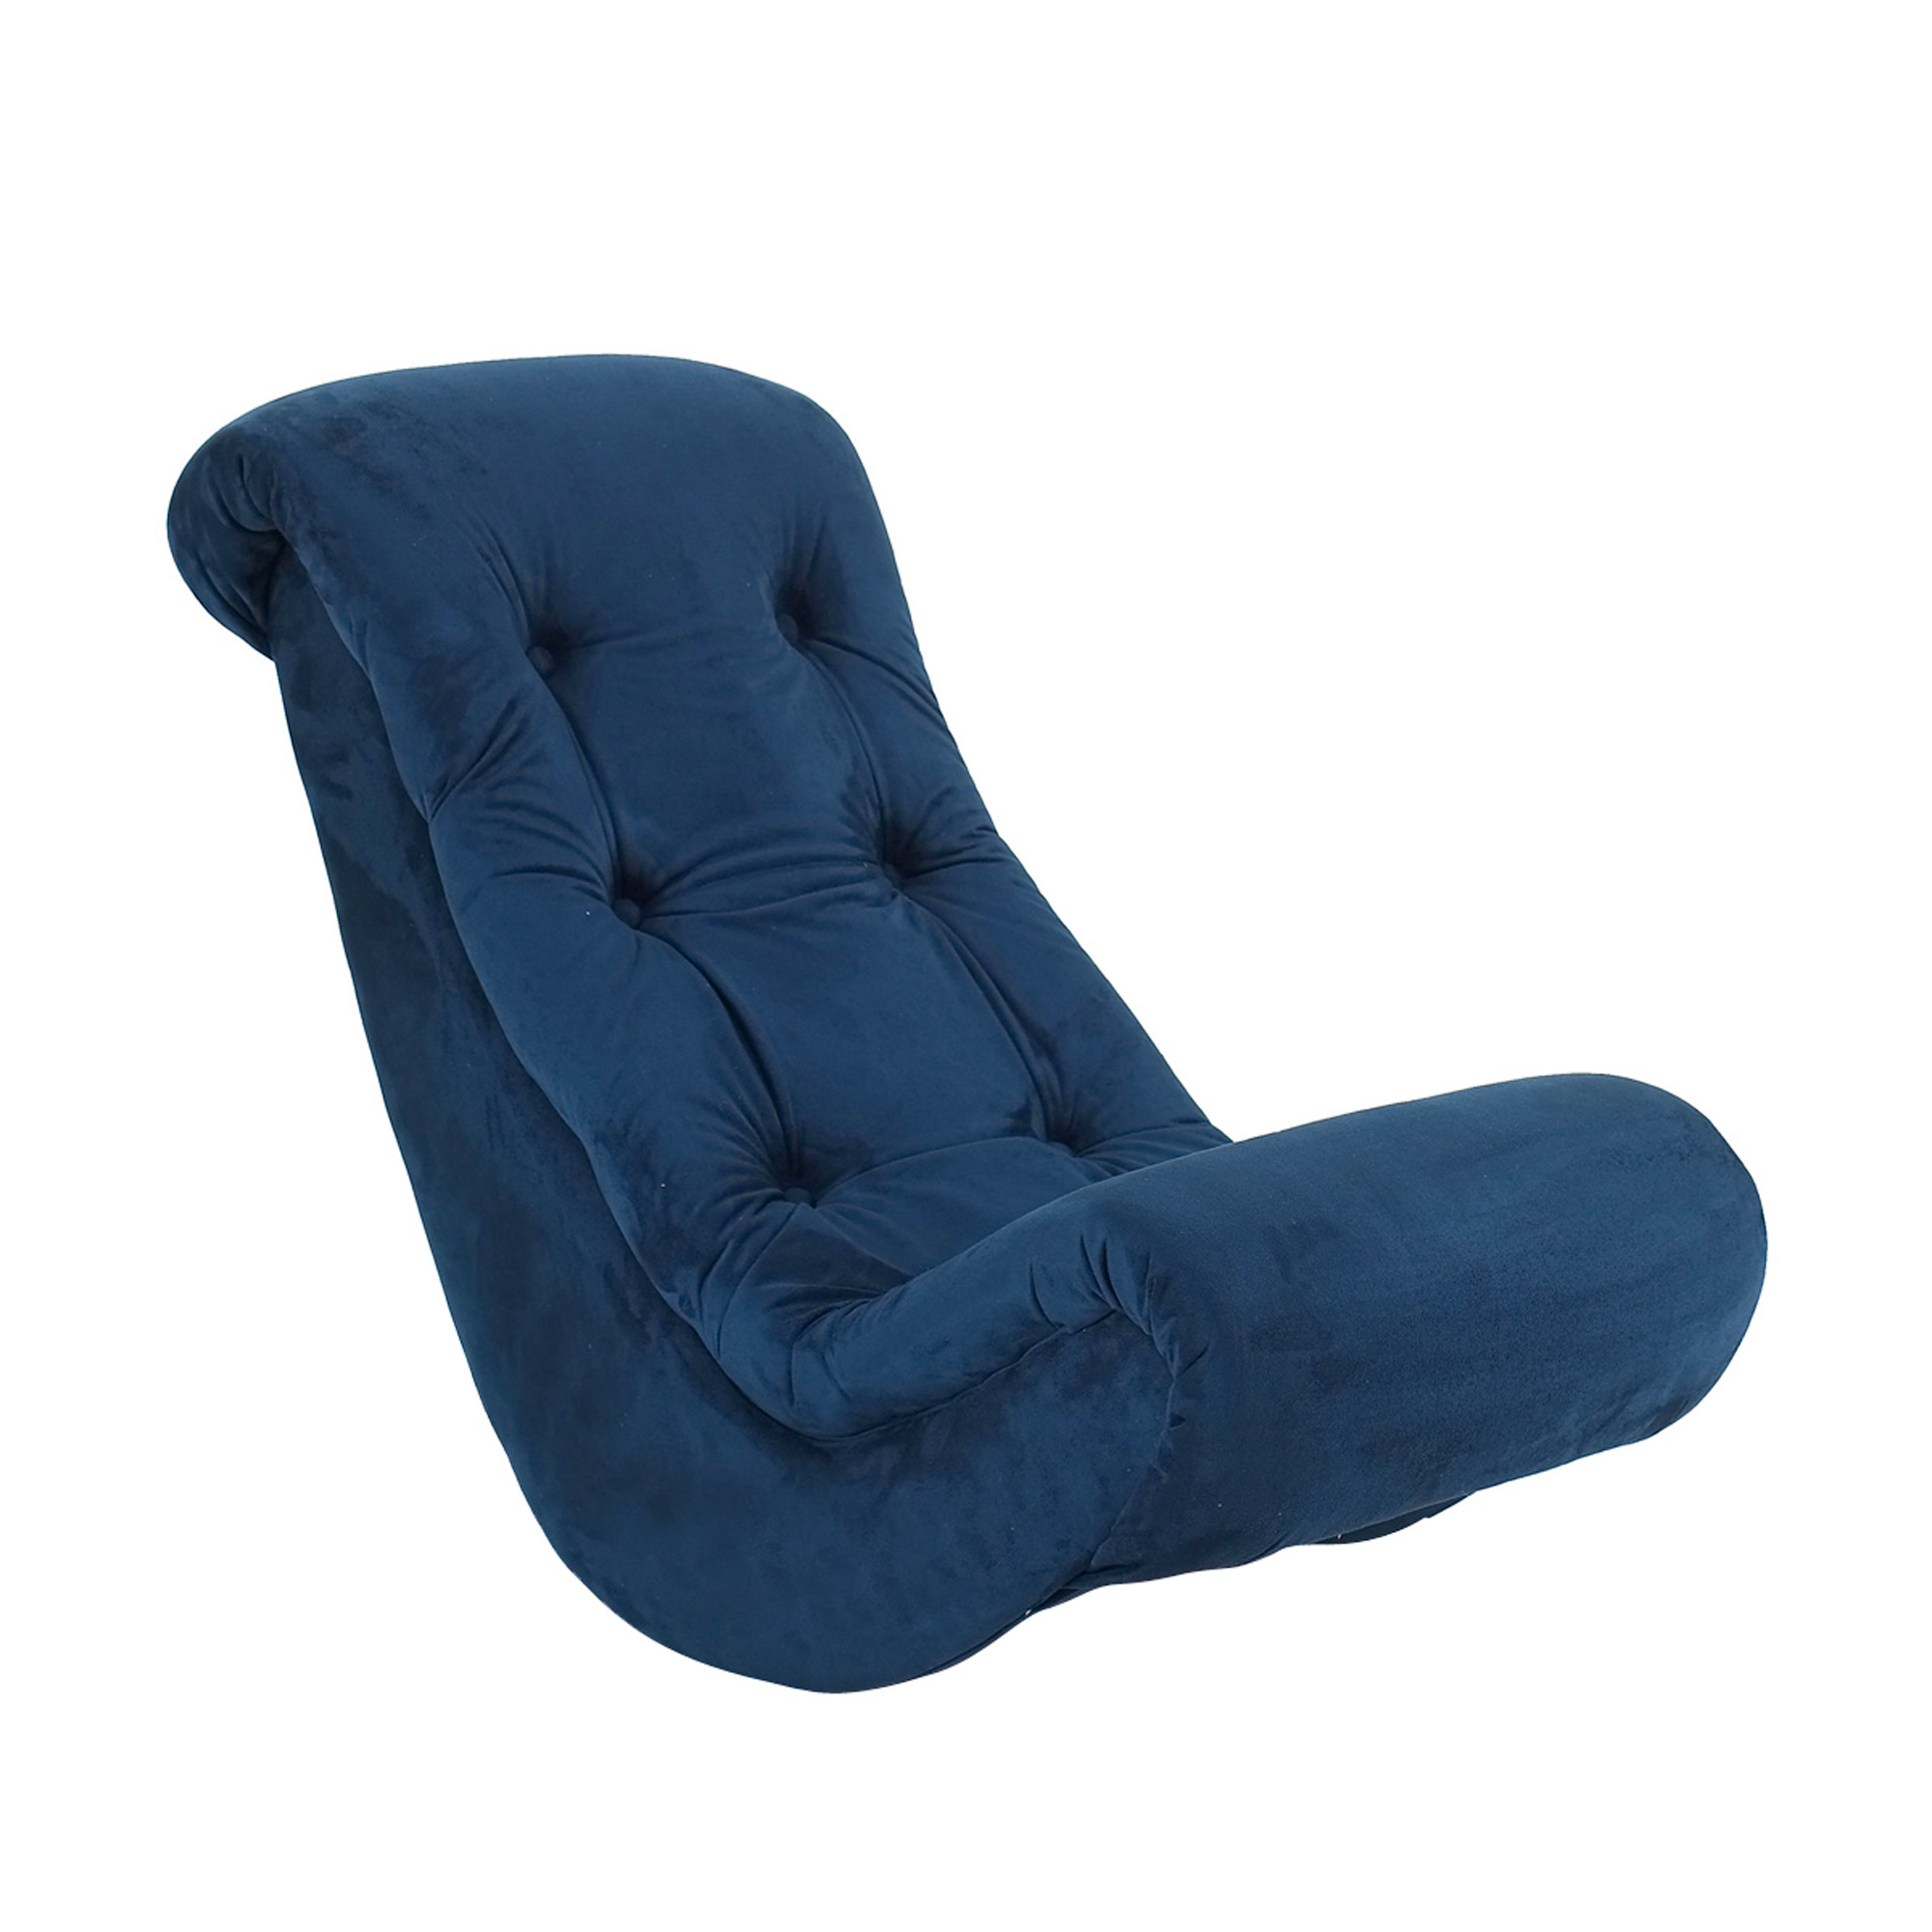 Toddler Rocker Chair Komfy Kings Kids Classic Banana Rocker Navy Blue Micro